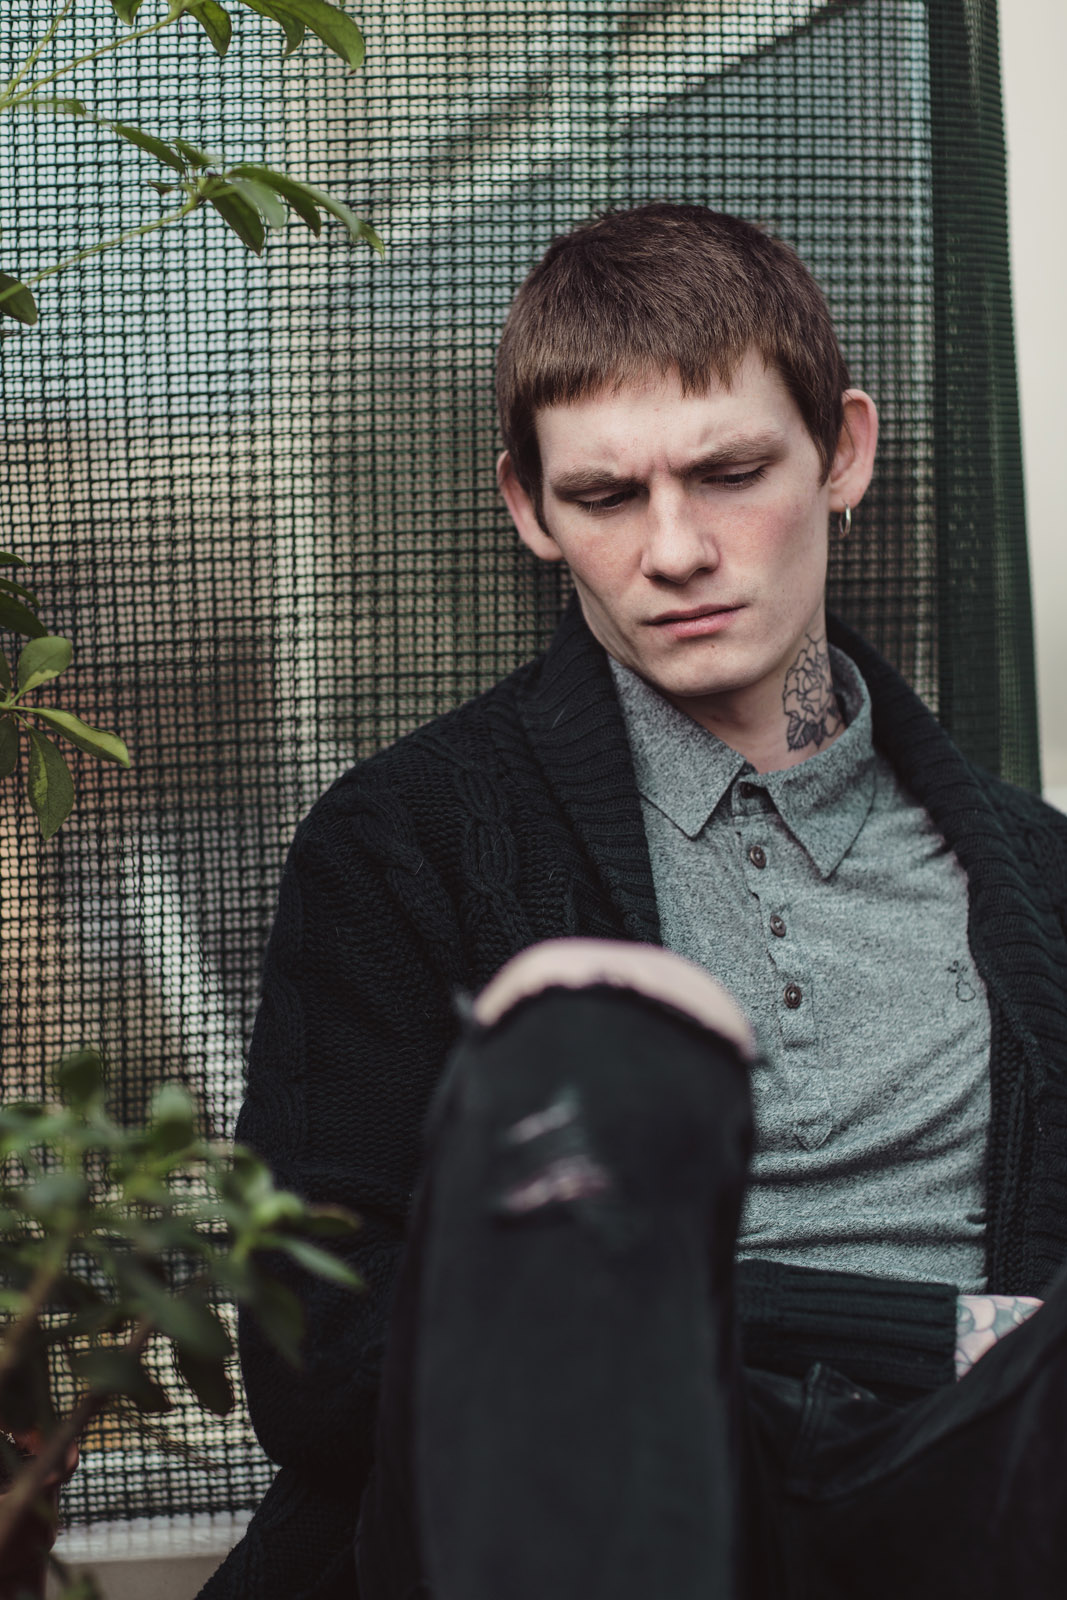 HUDSON HOUSE by Ben Fohrer for CHASSEUR MAGAZINE